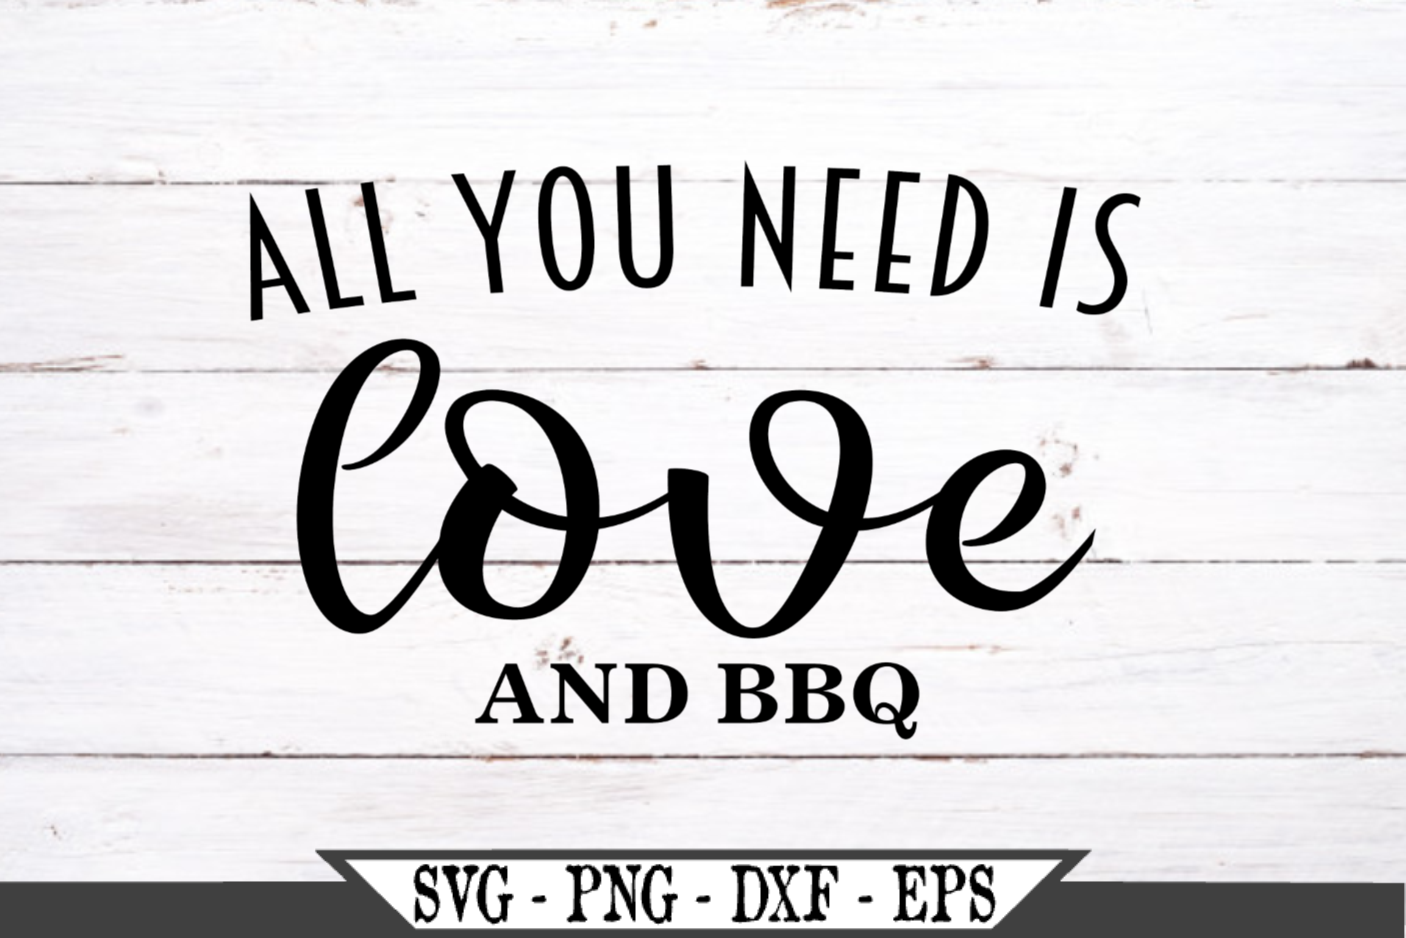 All You Need Is Love And BBQ SVG example image 2